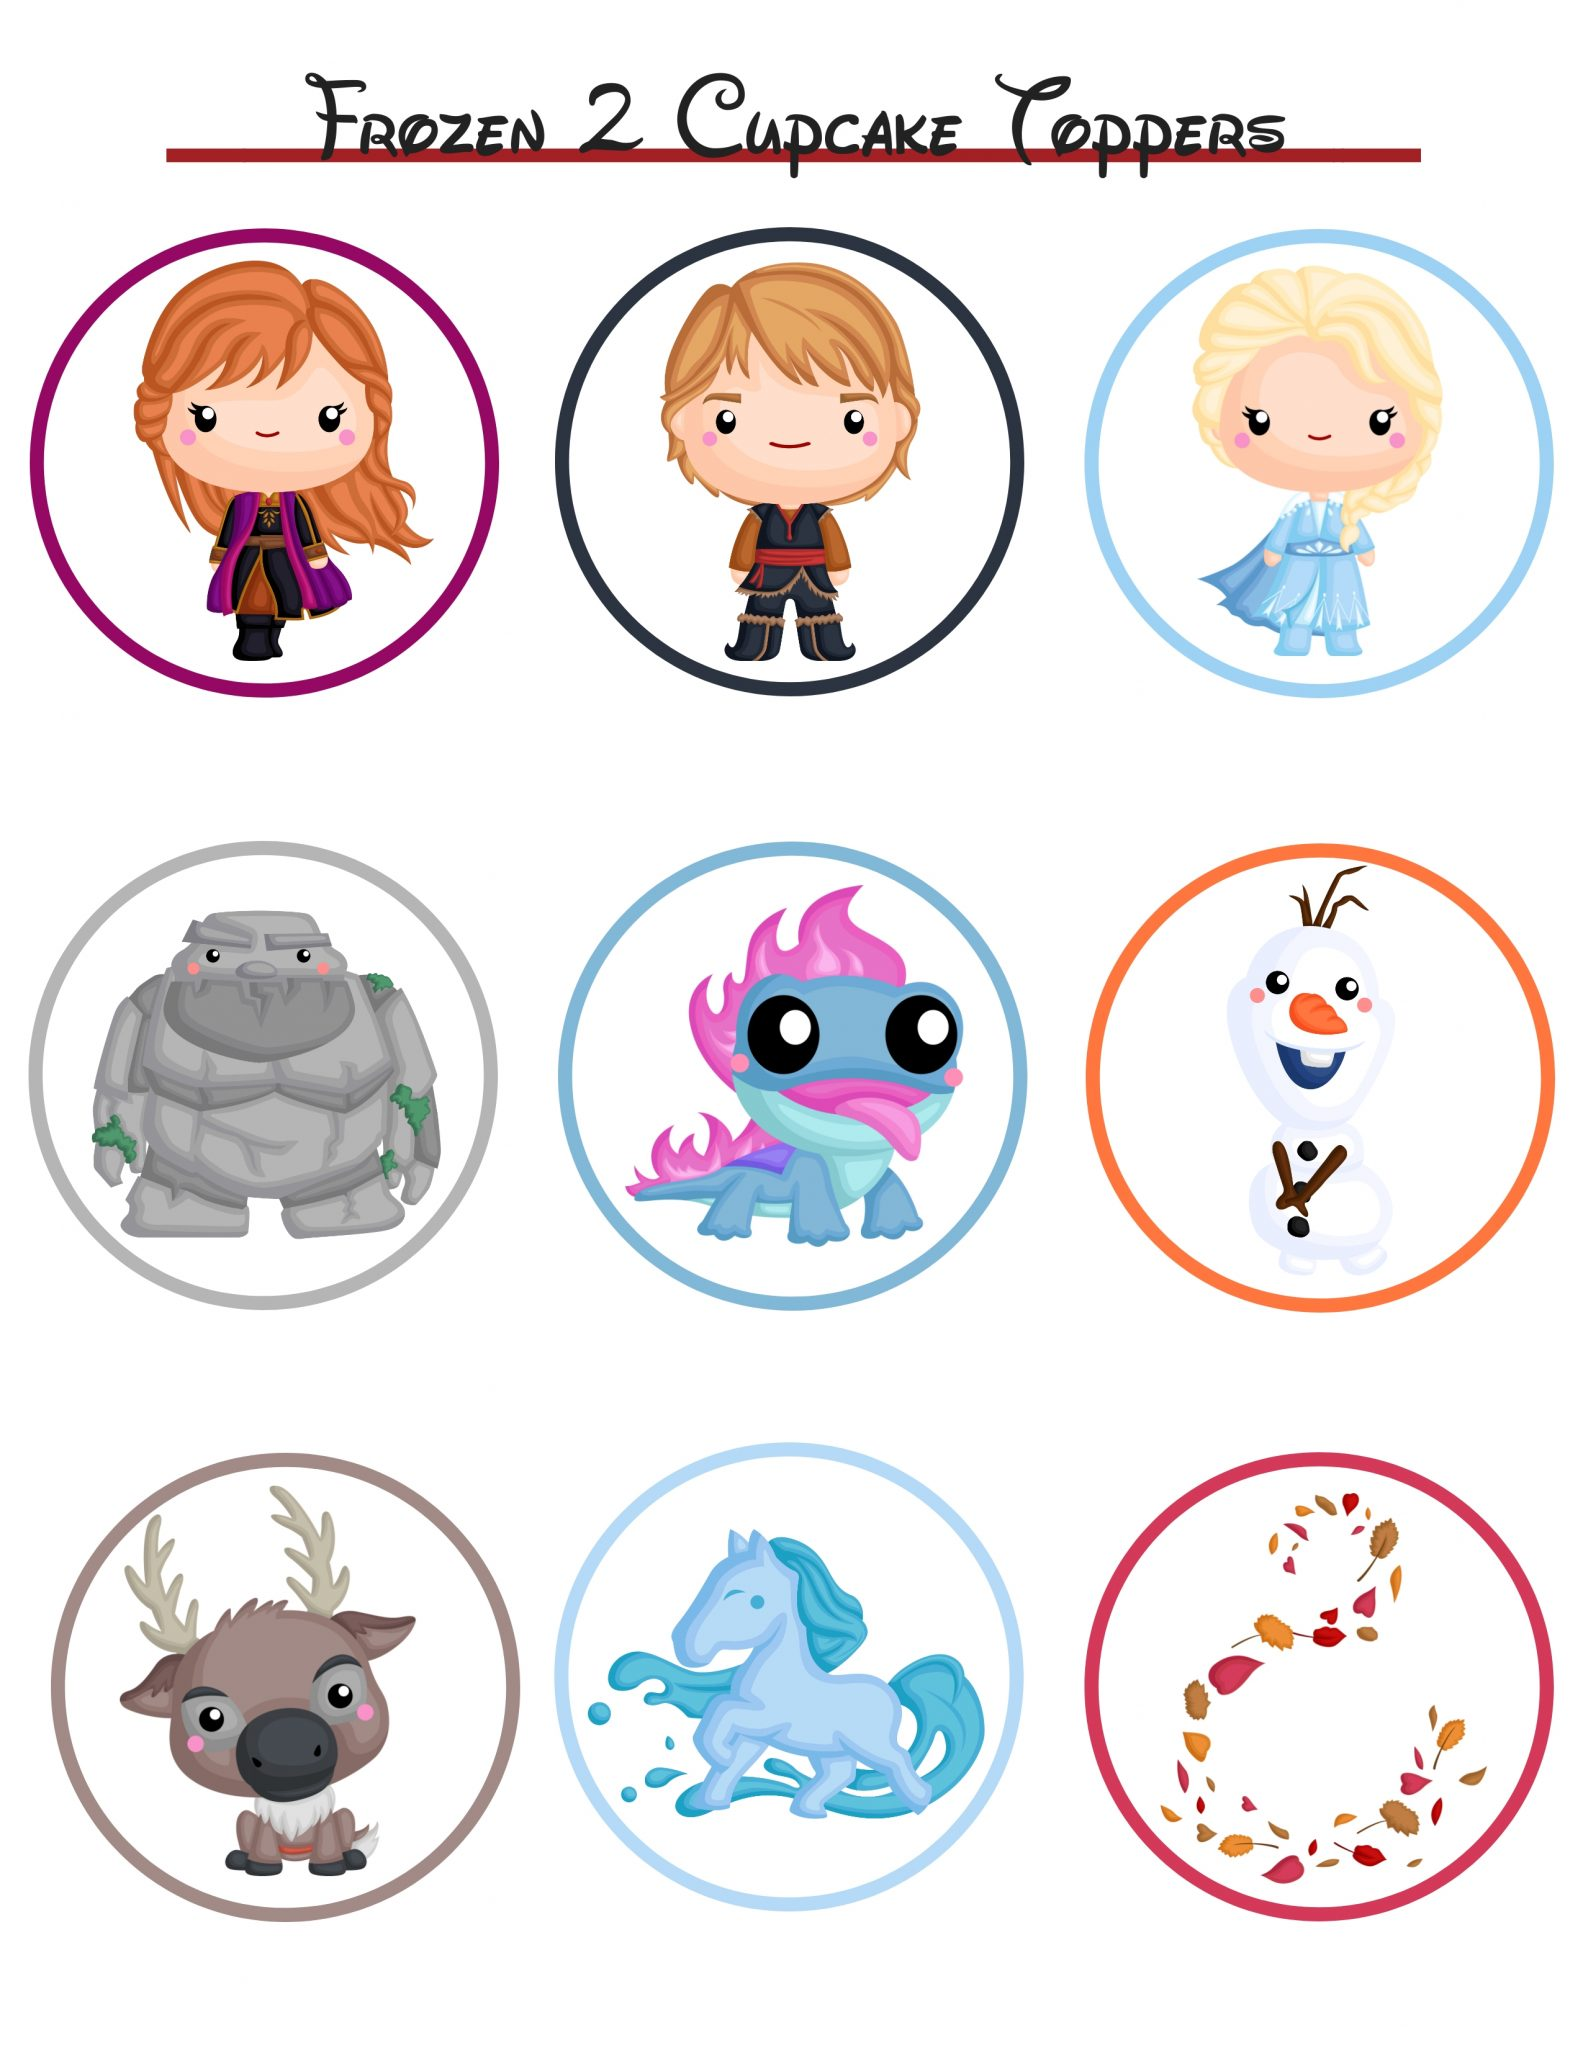 Frozen 2 Cupcake Toppers